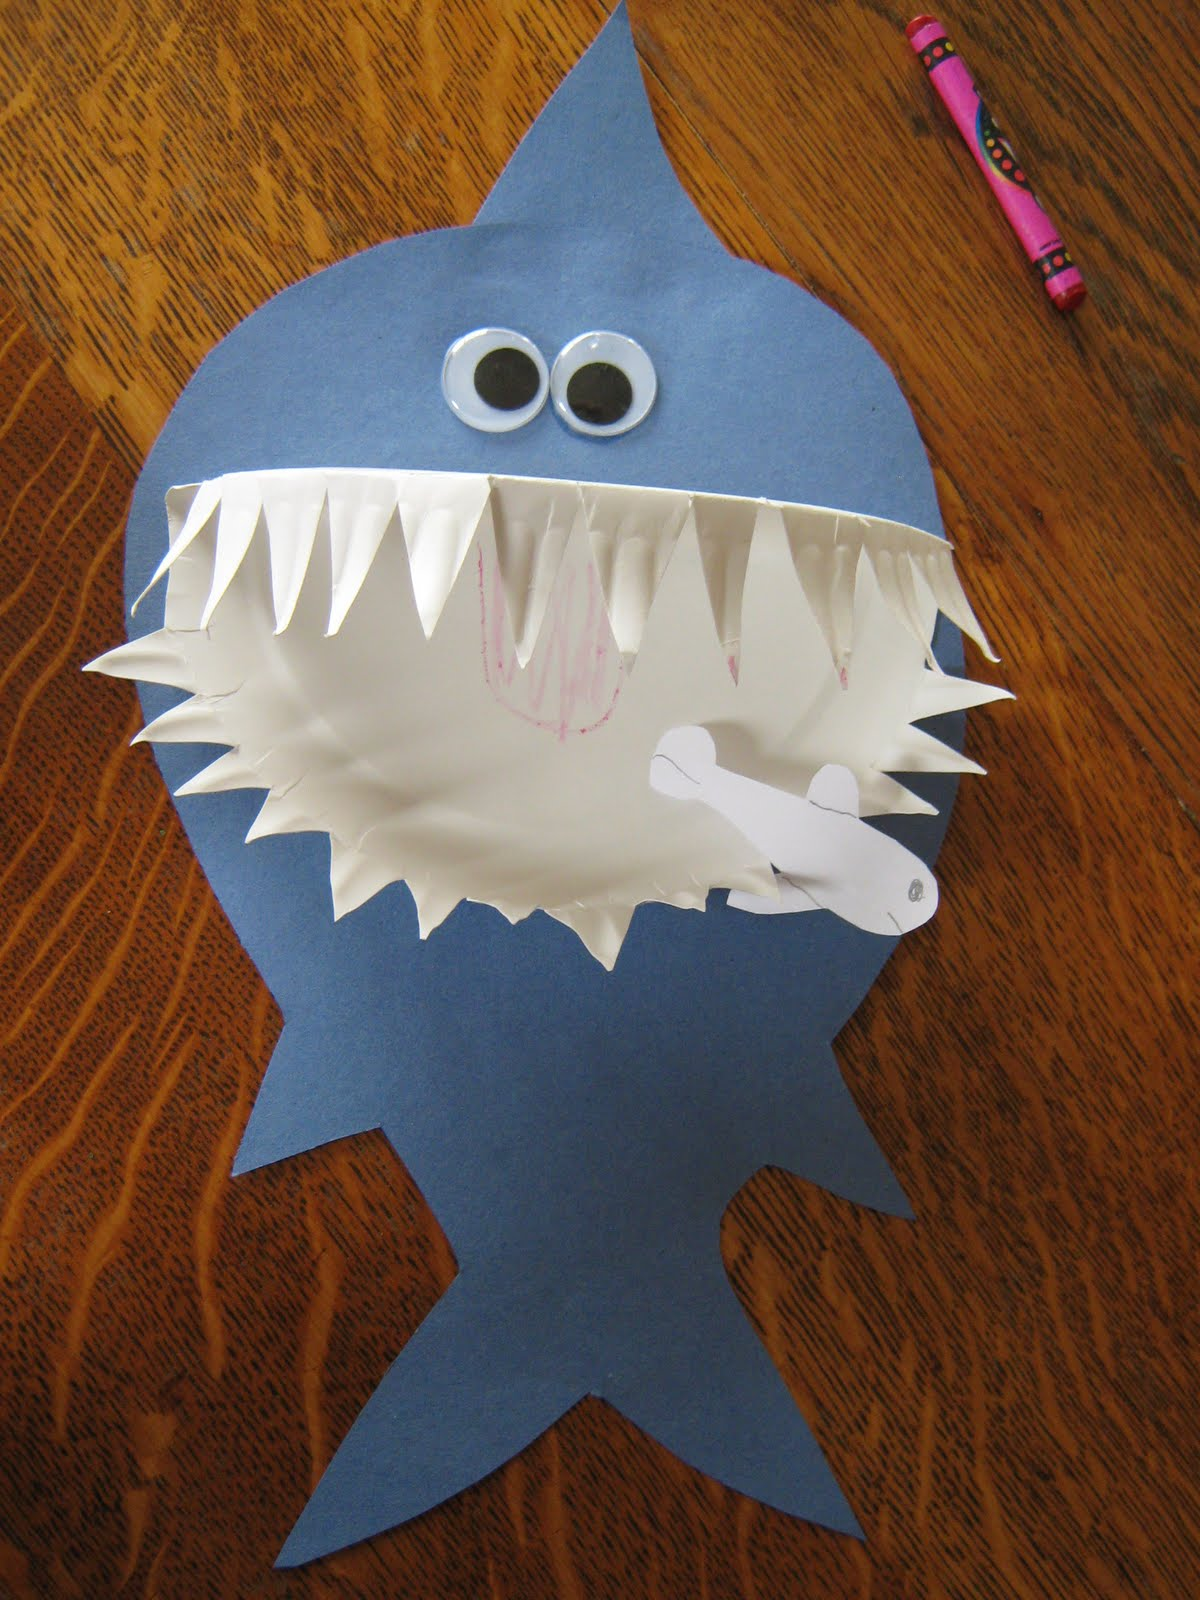 Preschool Crafts For Kids Shark Paper Plate Craft